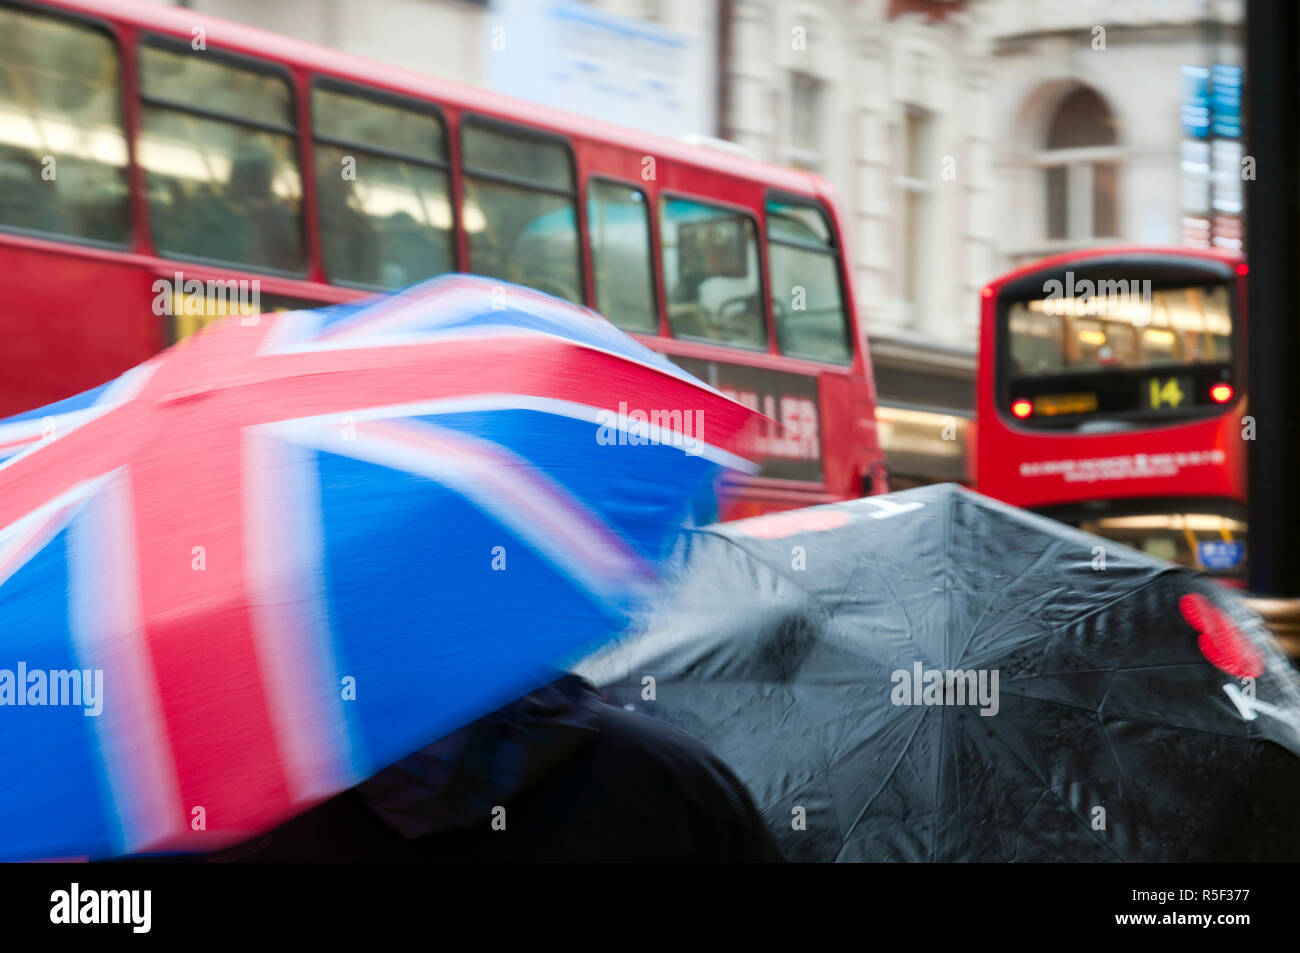 UK, England, London, Shaftesbury Avenue - Stock Image